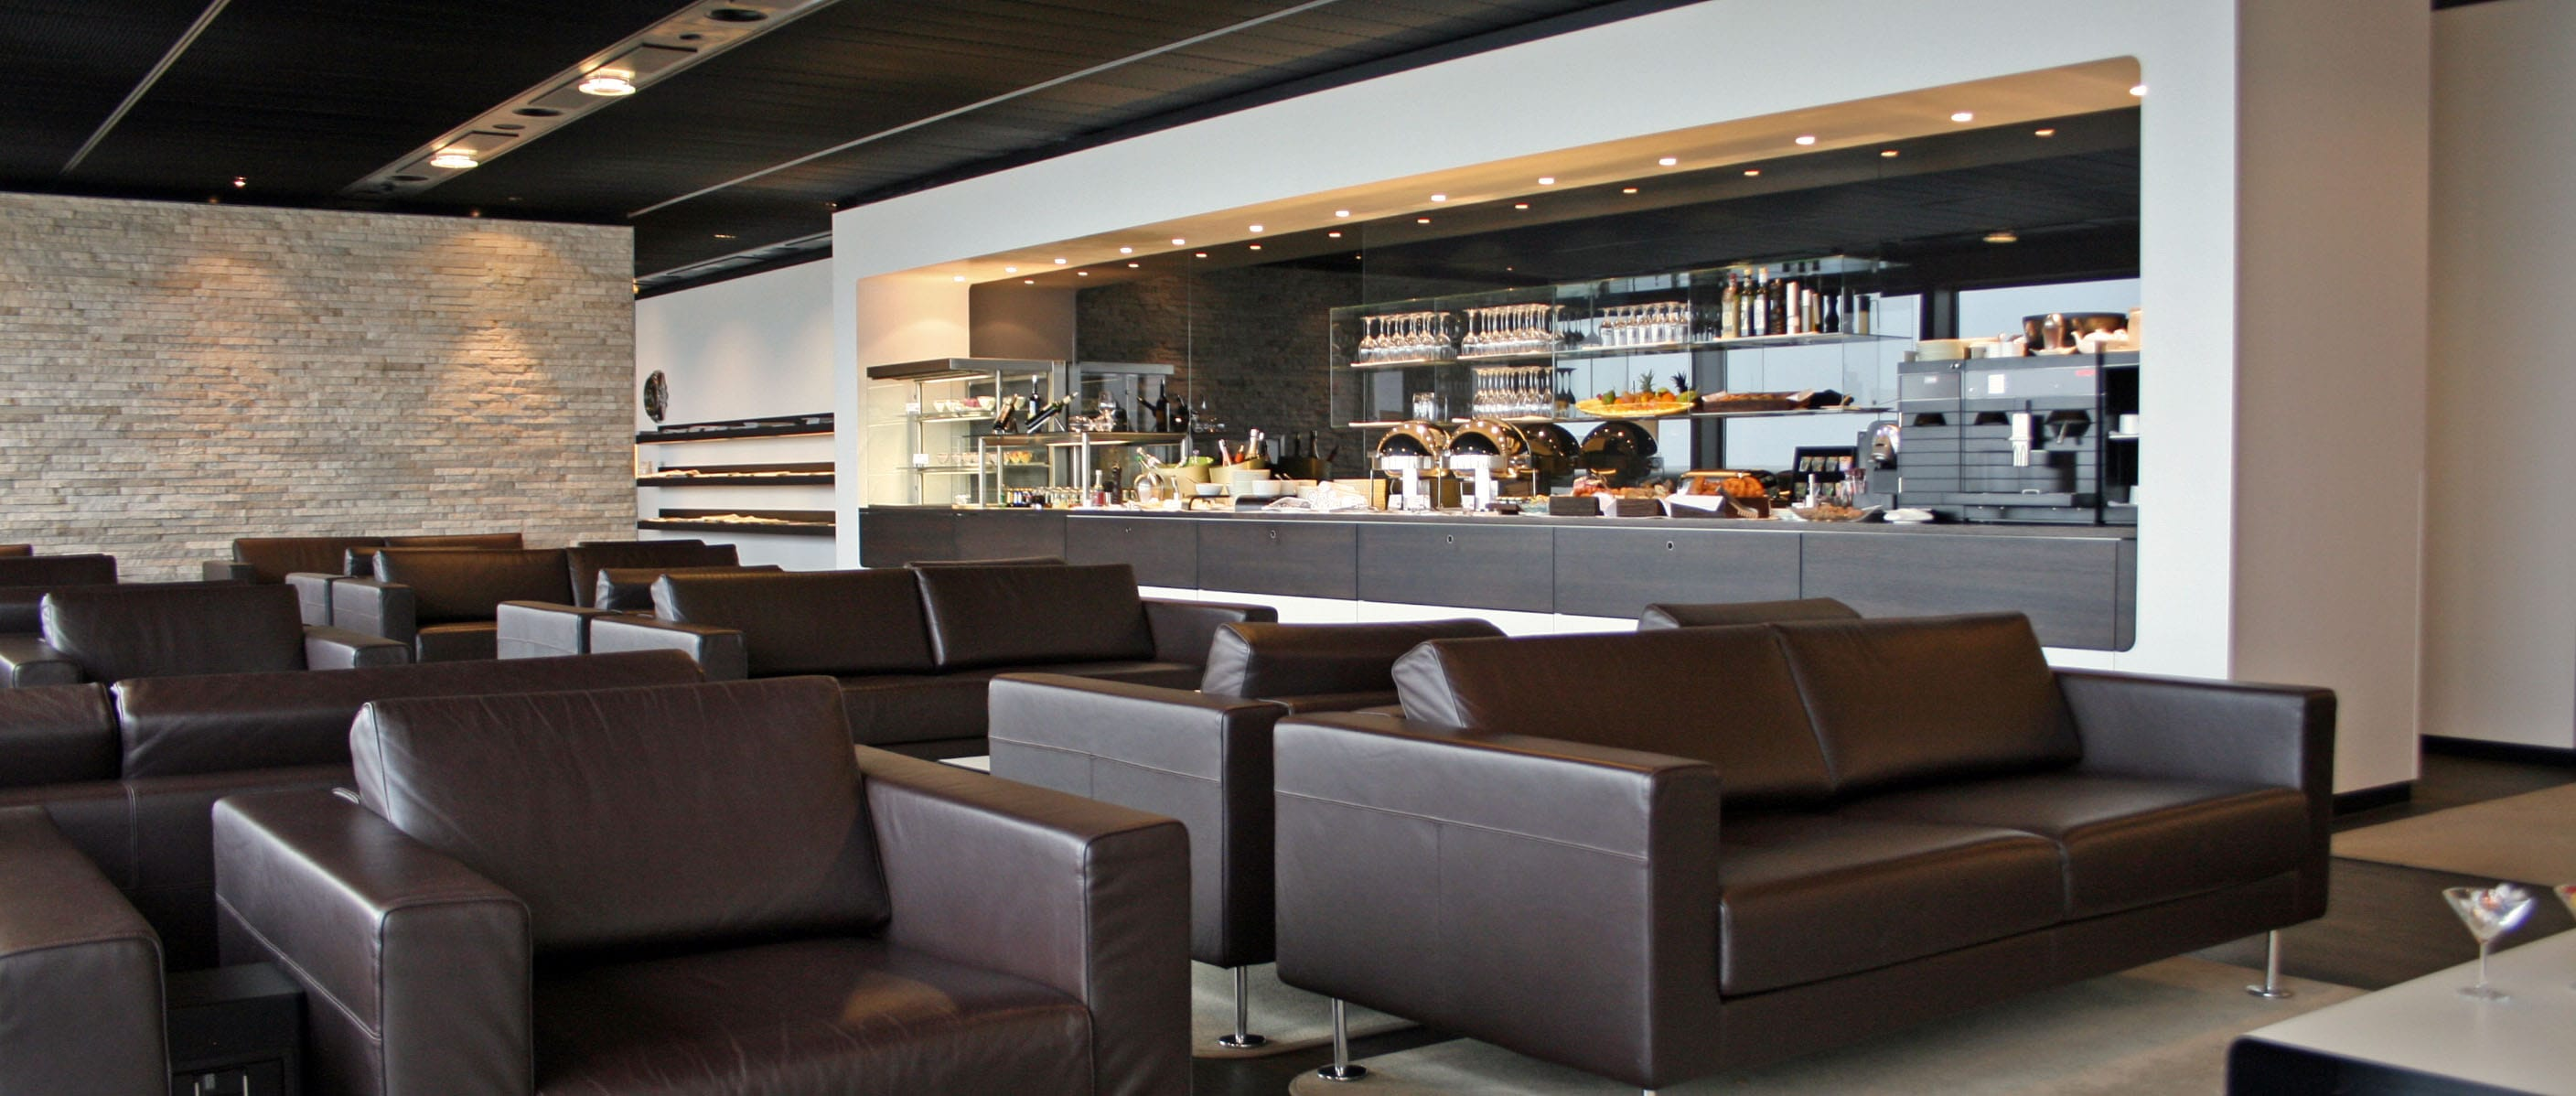 The very best airline rewards programs flights blog for Best airport lounge program